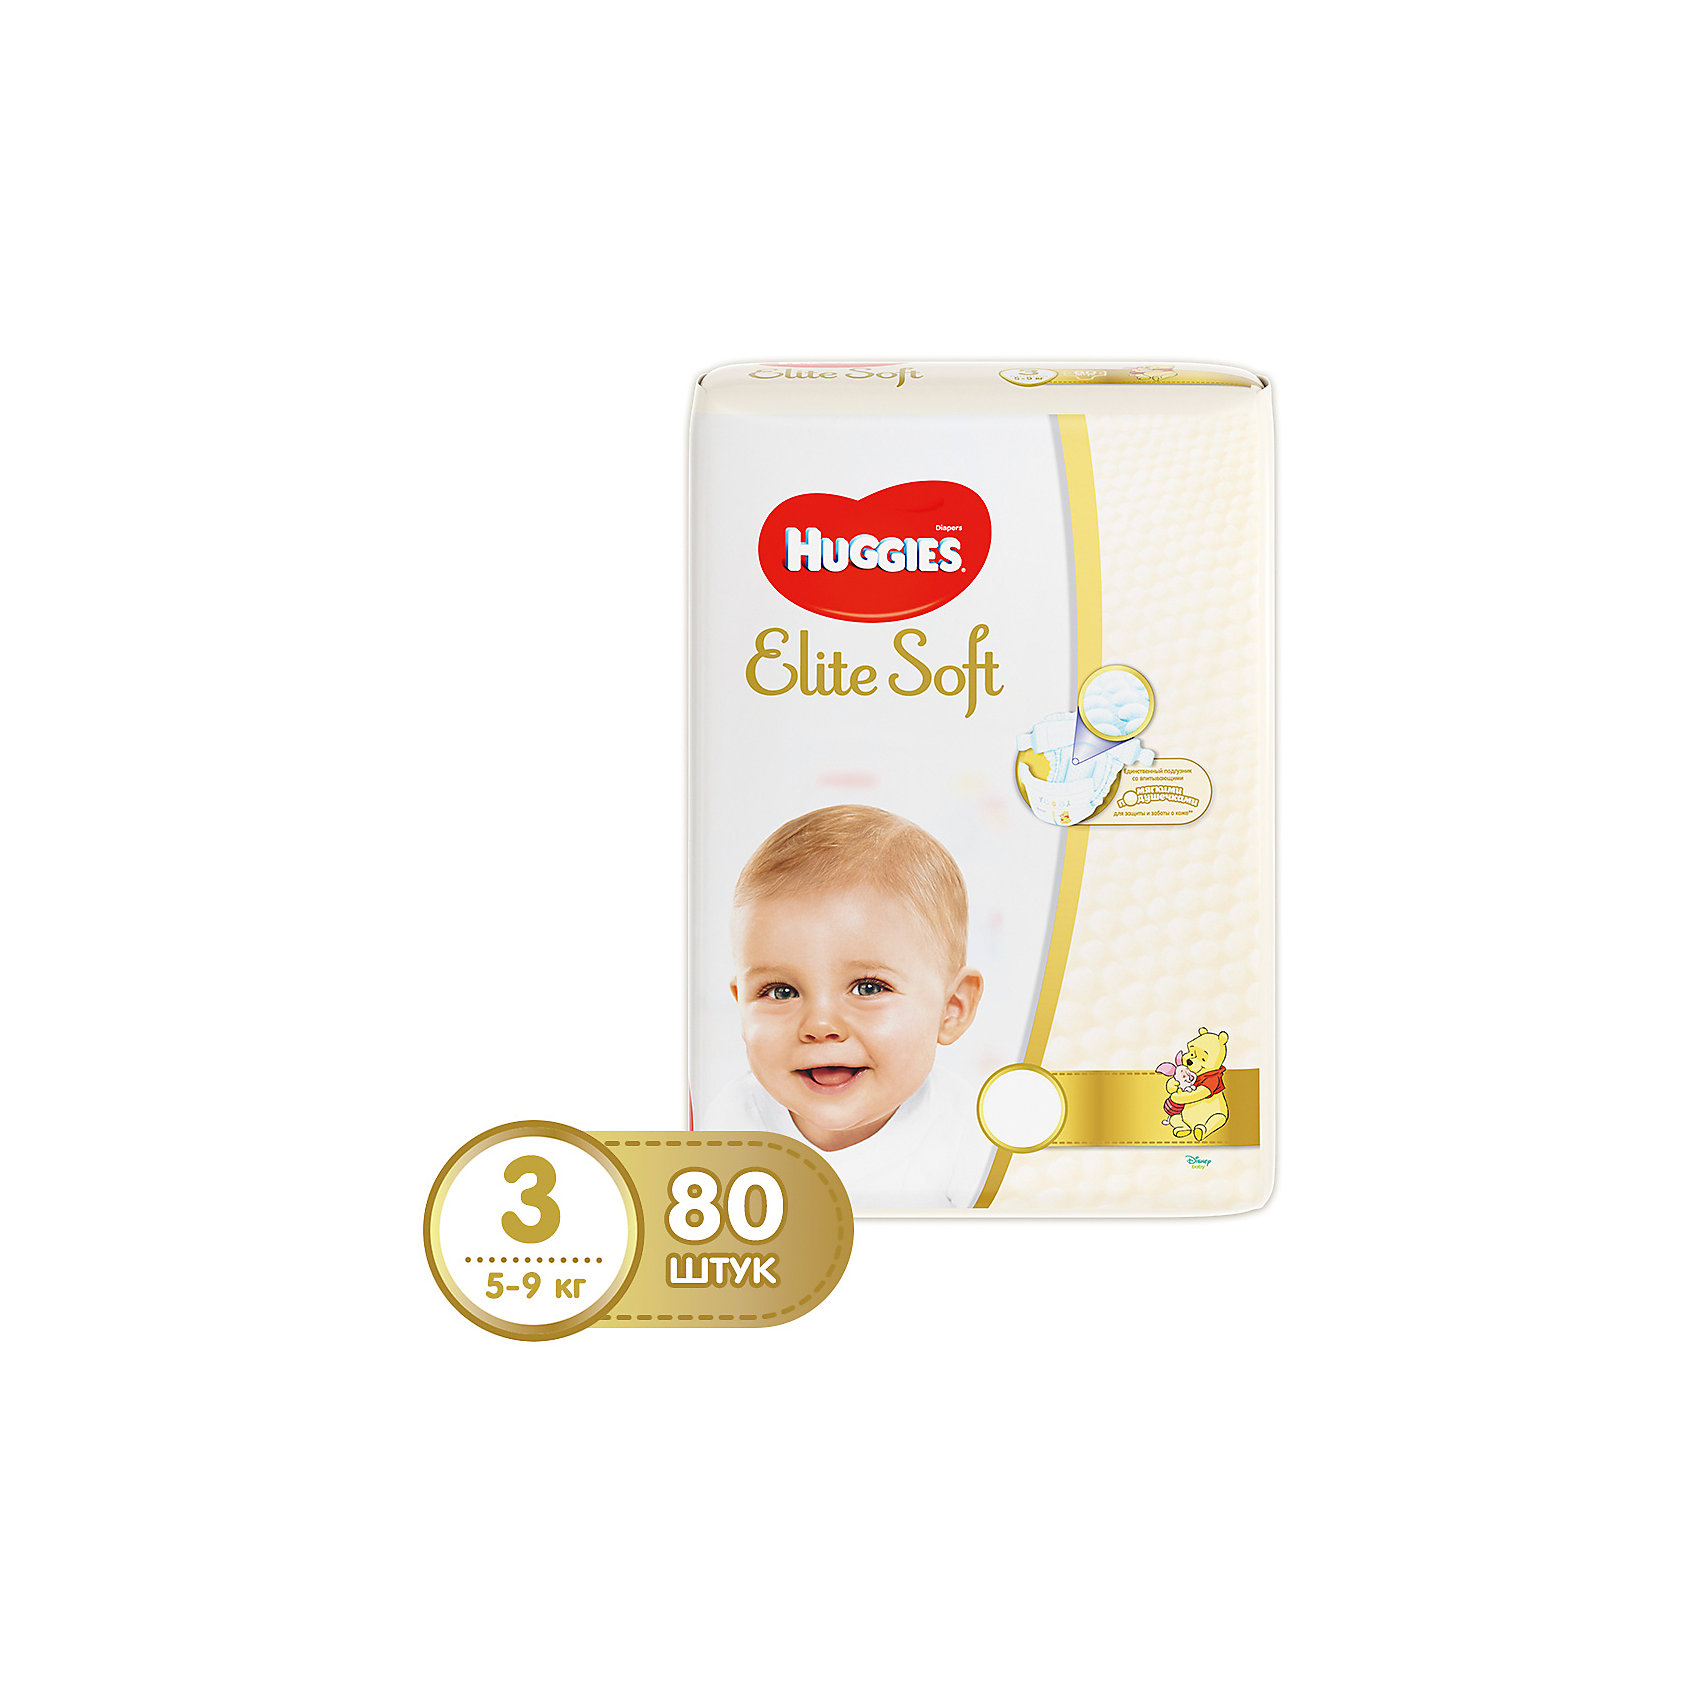 HUGGIES Подгузники Elite Soft 3, 5-9 кг, 80 шт., Huggies greenty подгузники greenty 5 13 кг 32 шт